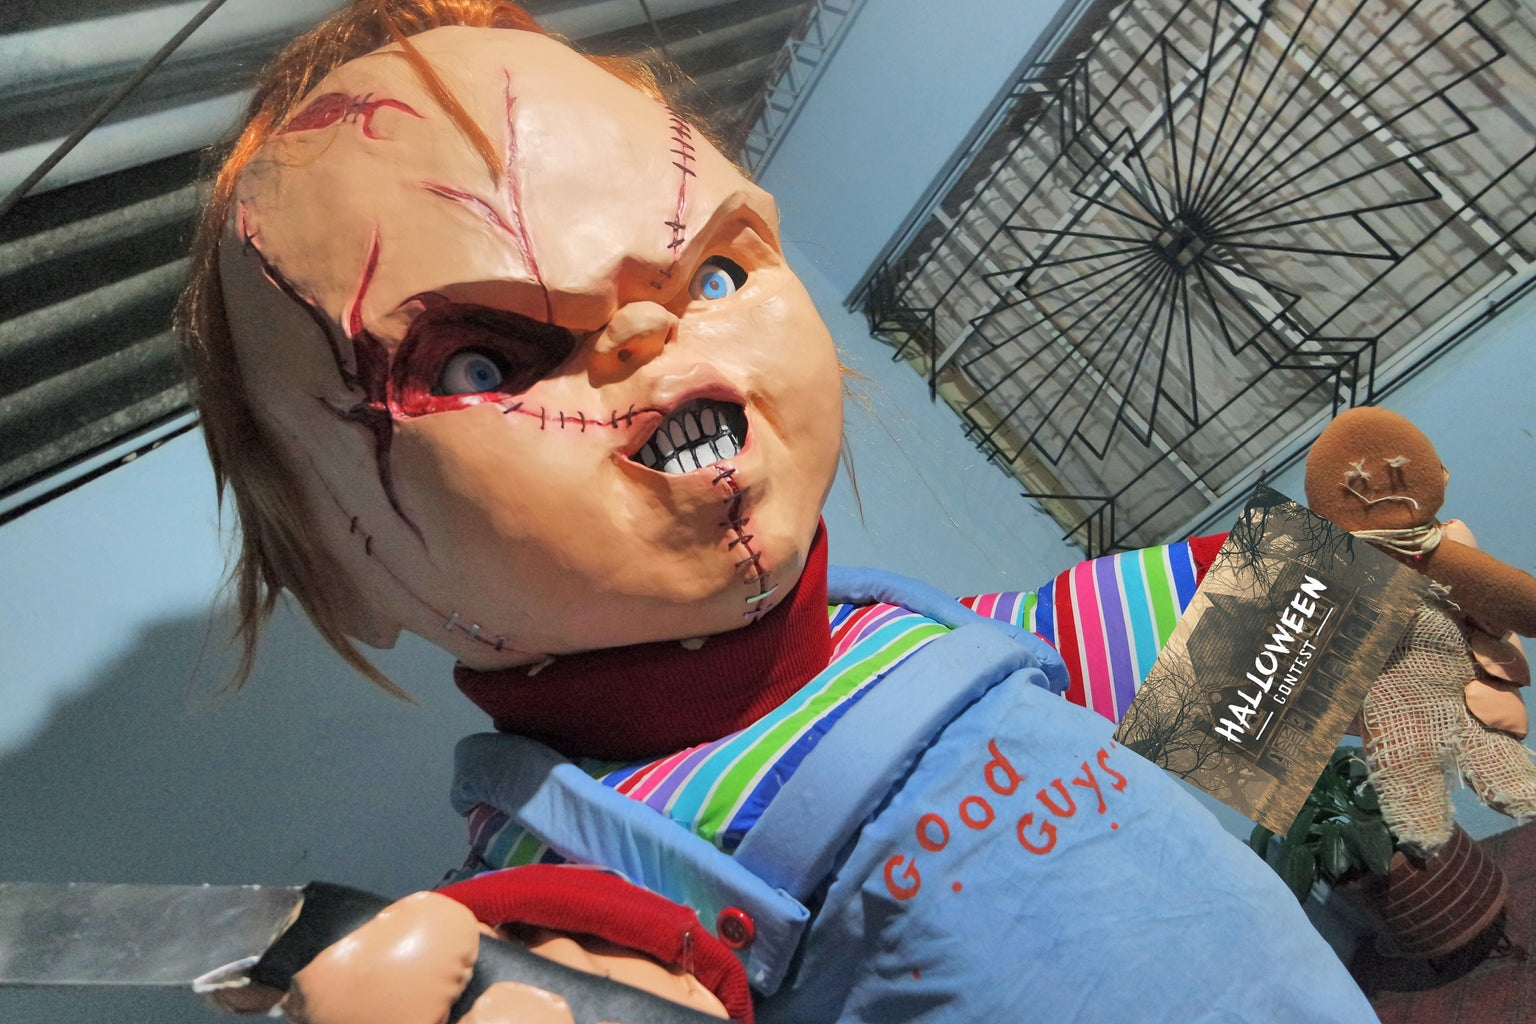 Now You Have Your Own Giant Chucky